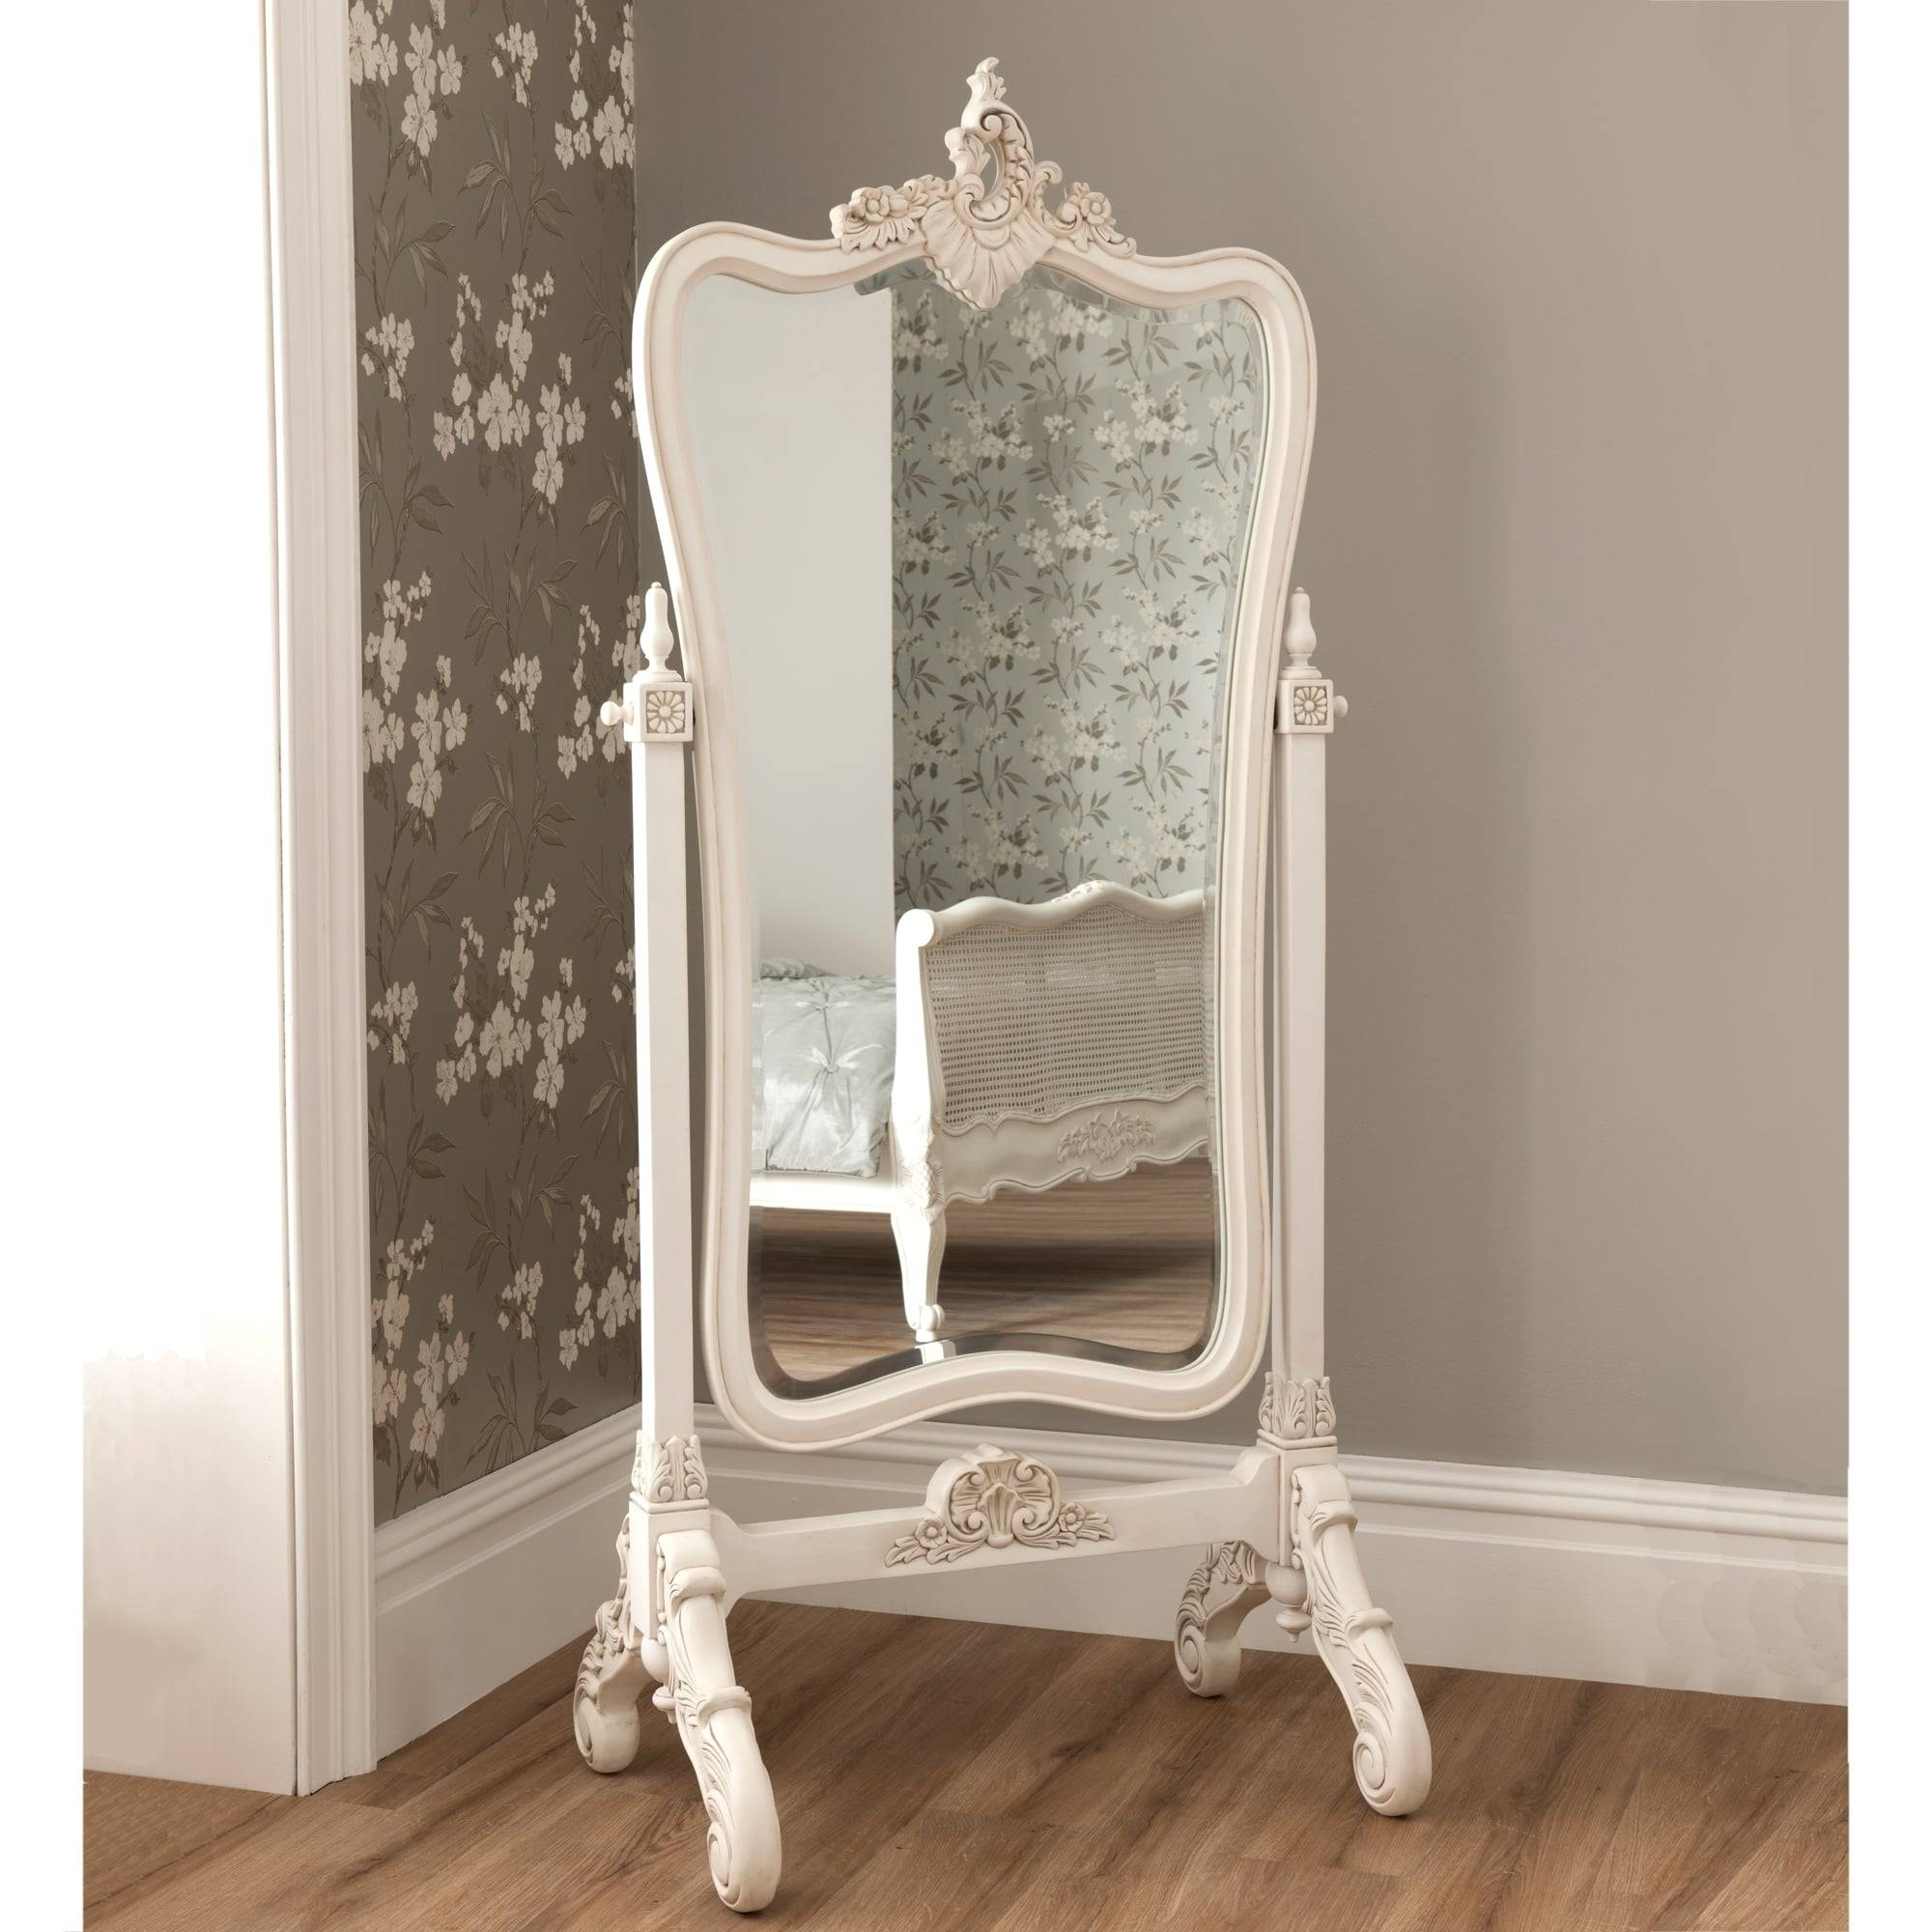 Cheval Mirrors | French Style Mirrors | Shabby Chic regarding French Chic Mirrors (Image 6 of 15)